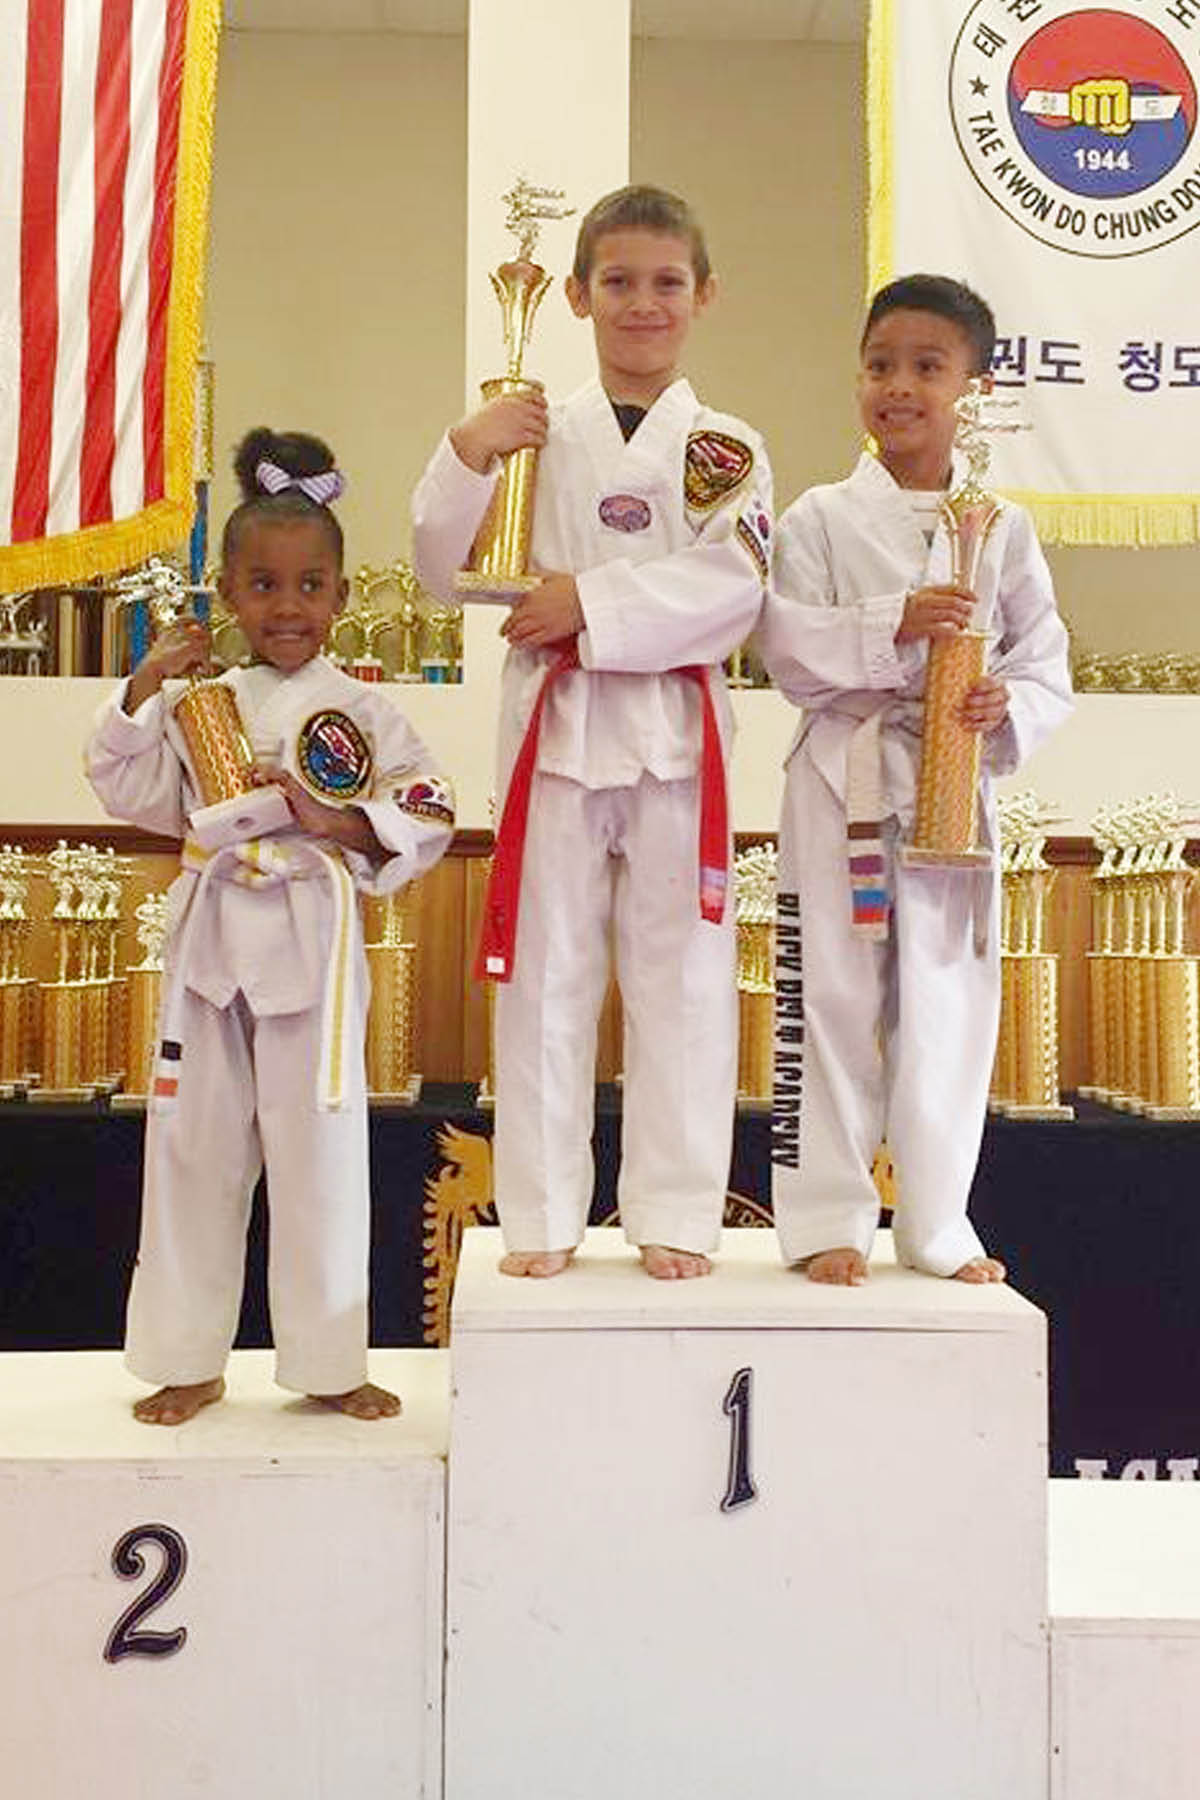 Black Belt Adademy in Charles County, Tae Kwon Do in Southern Maryland